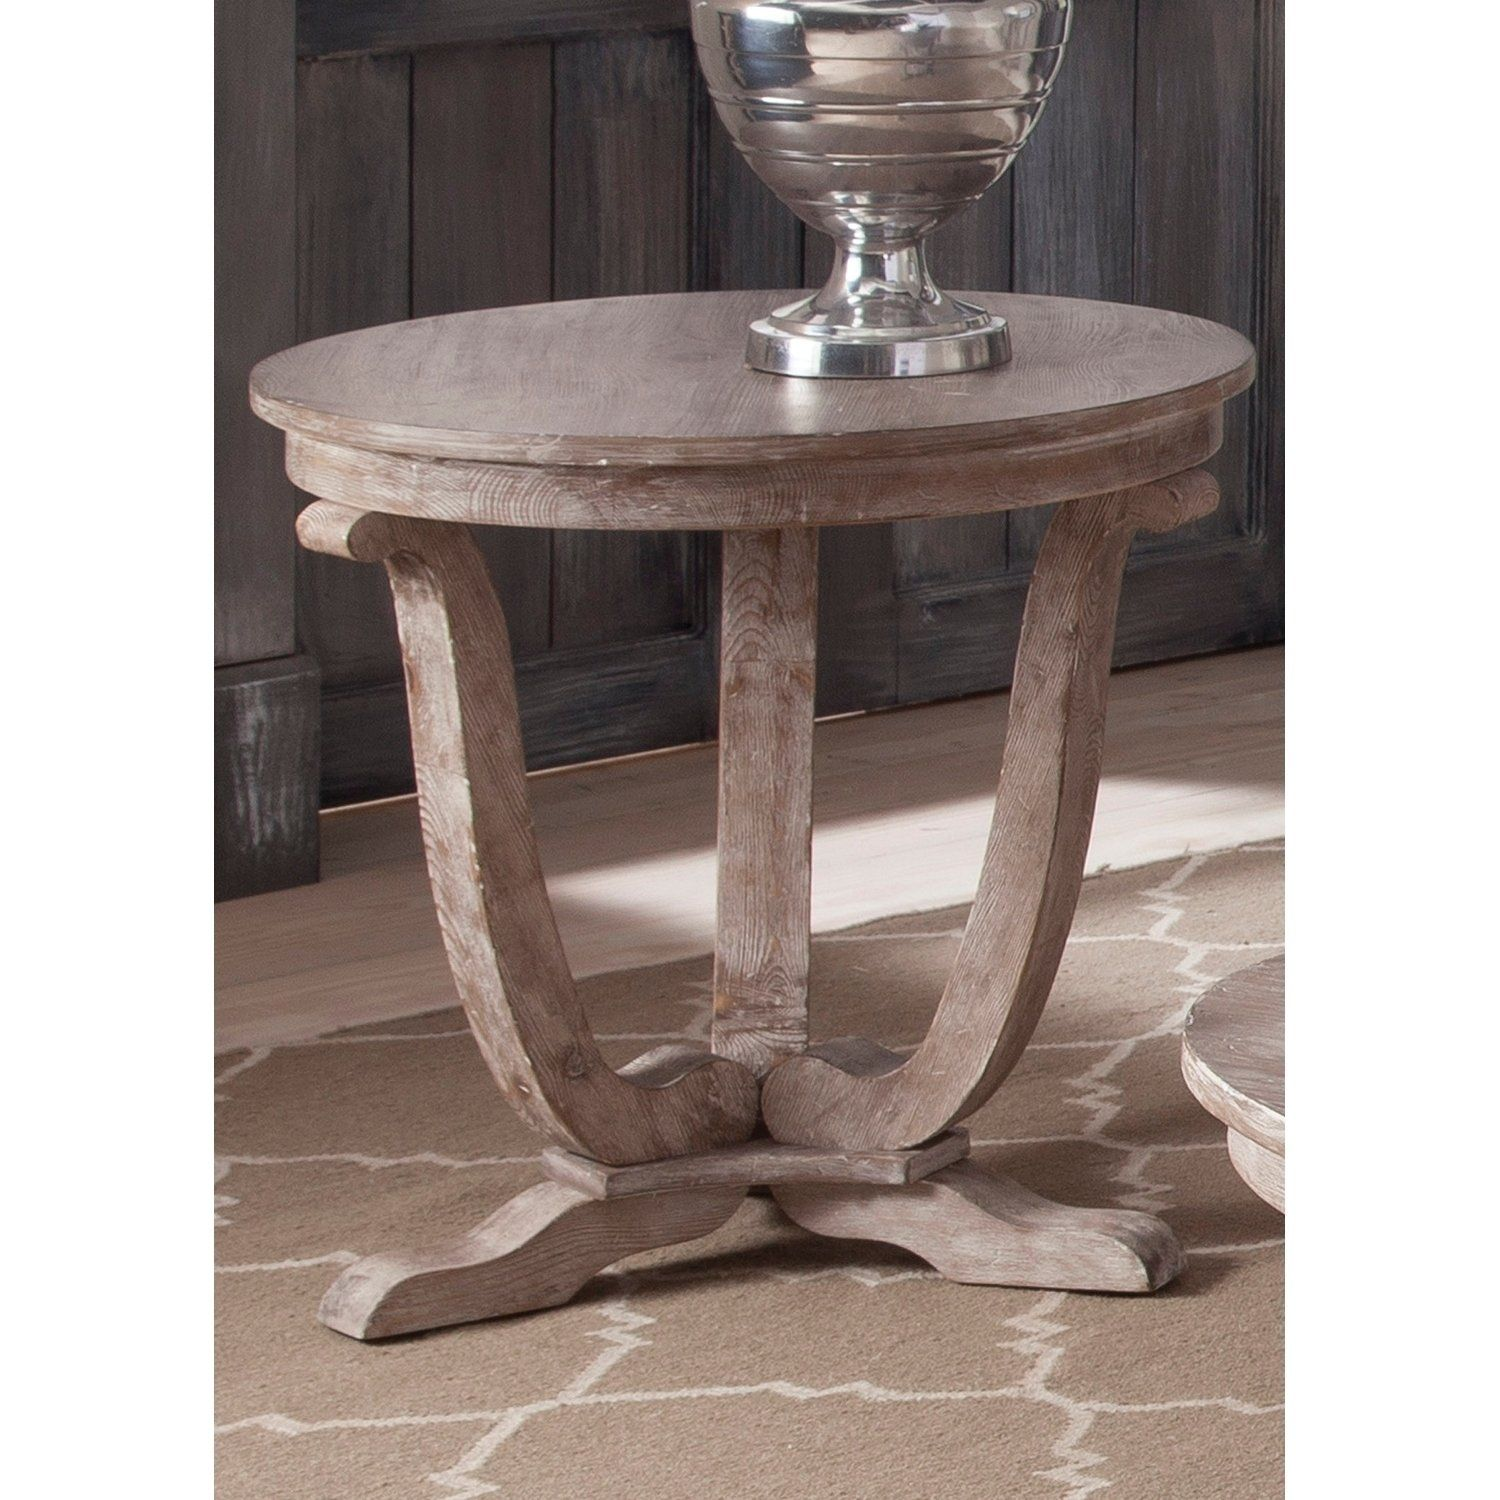 Maison Rouge Hamilton Stone White Wash End Table Greystone Mill Washed Round Brown